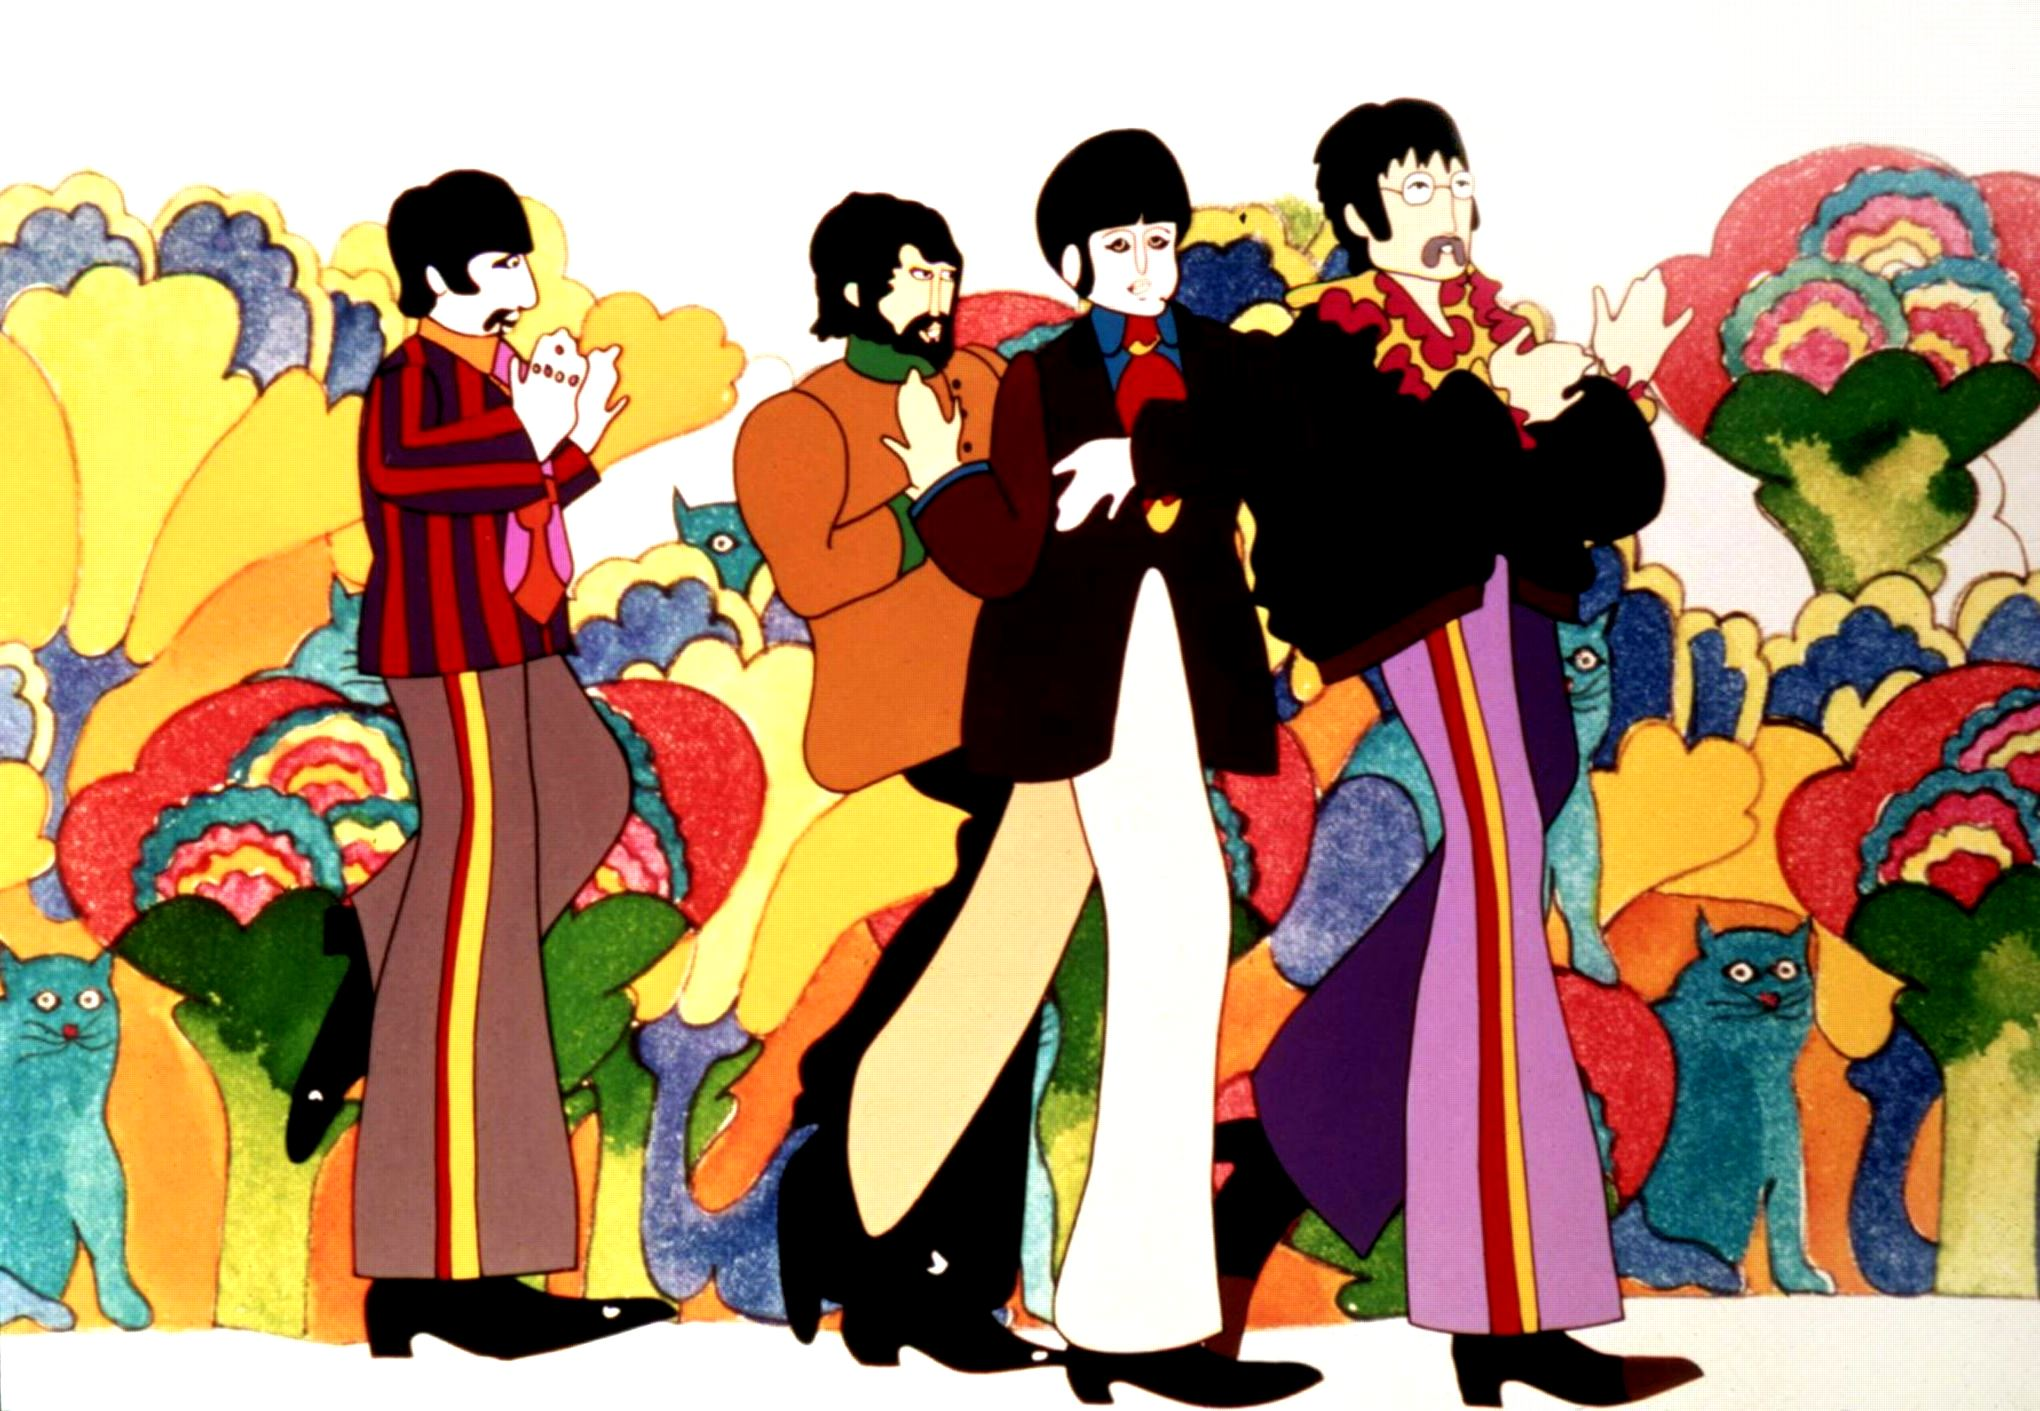 Animated likenesses of The Beatles in Pepperland in Yellow Submarine (1968)